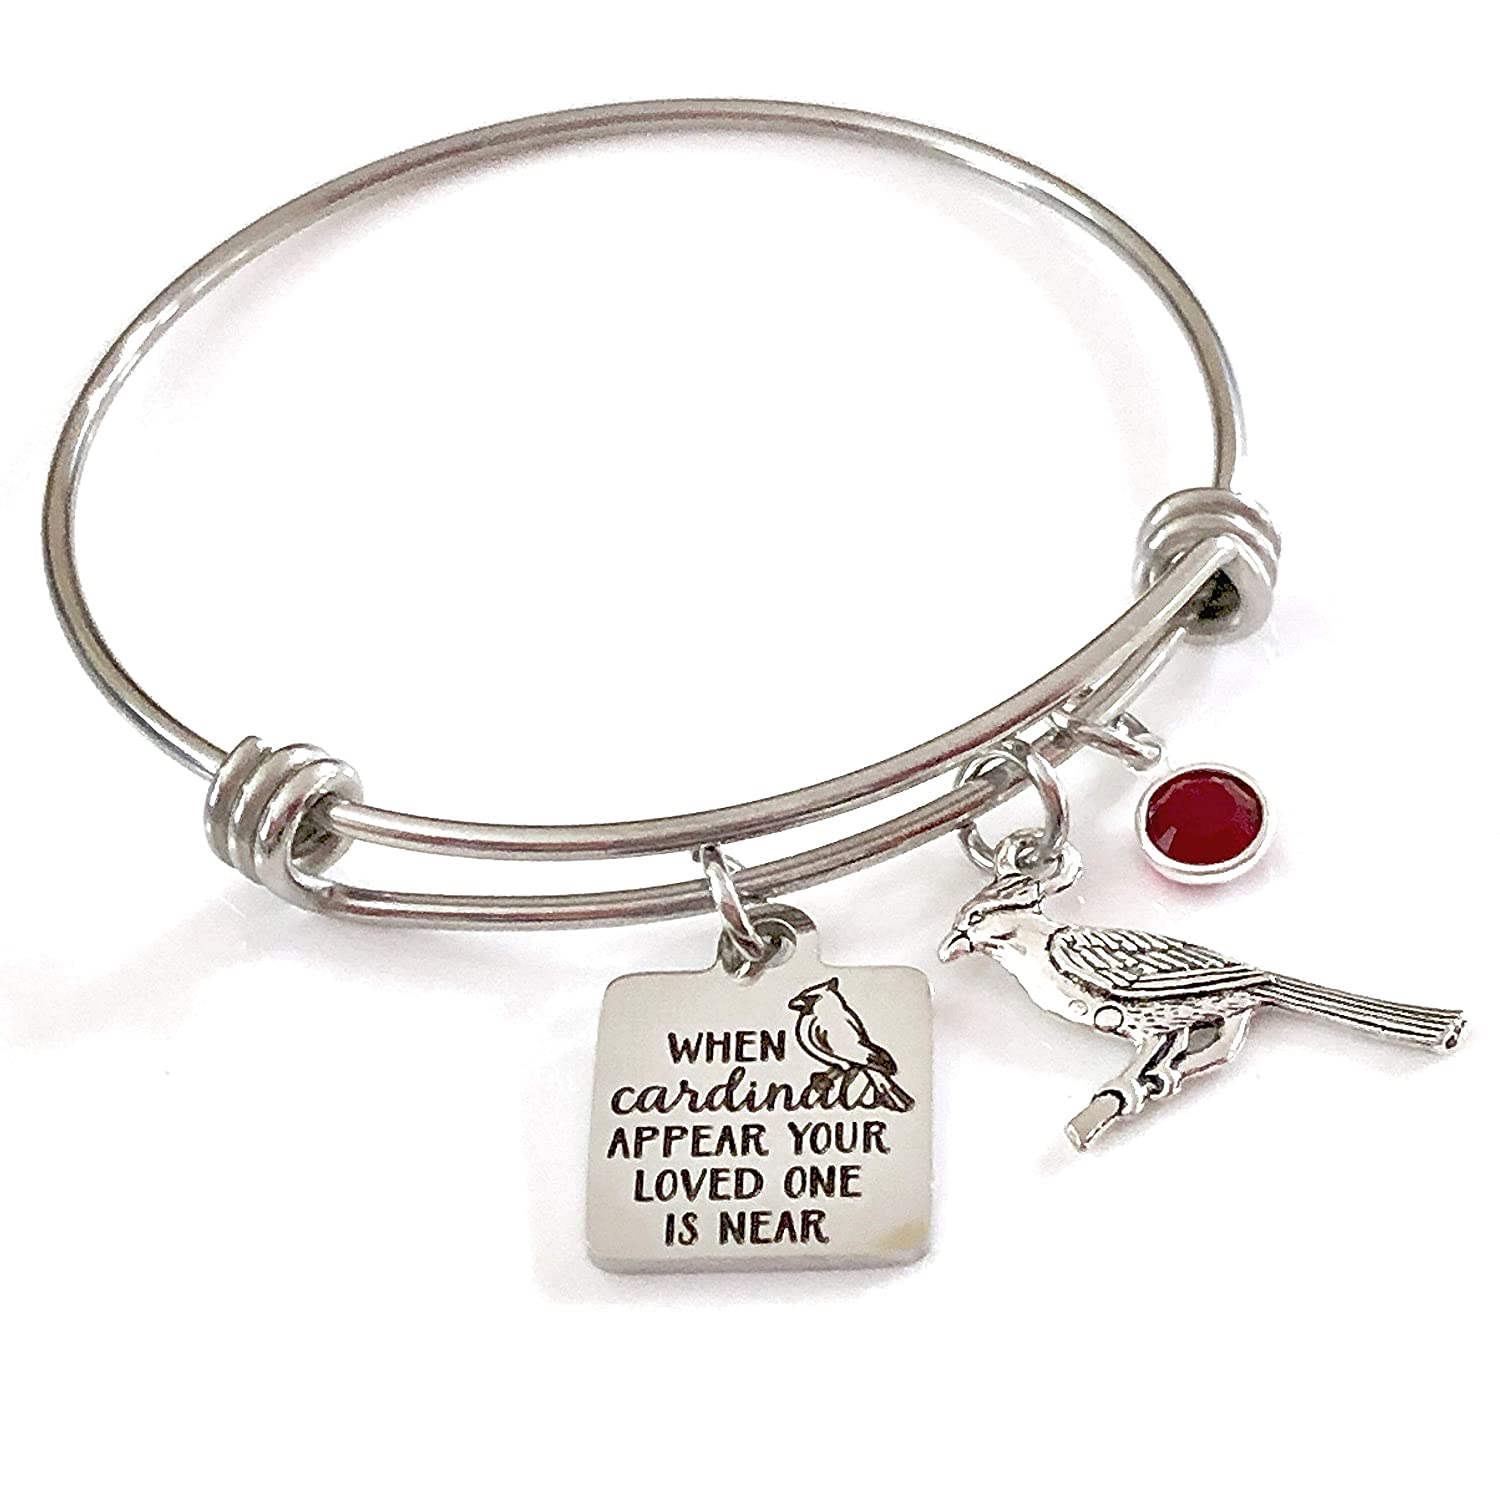 17600cccedde6 Memorial Jewelry, When Cardinals Appear Your Loved One is Near Bangle  Bracelet